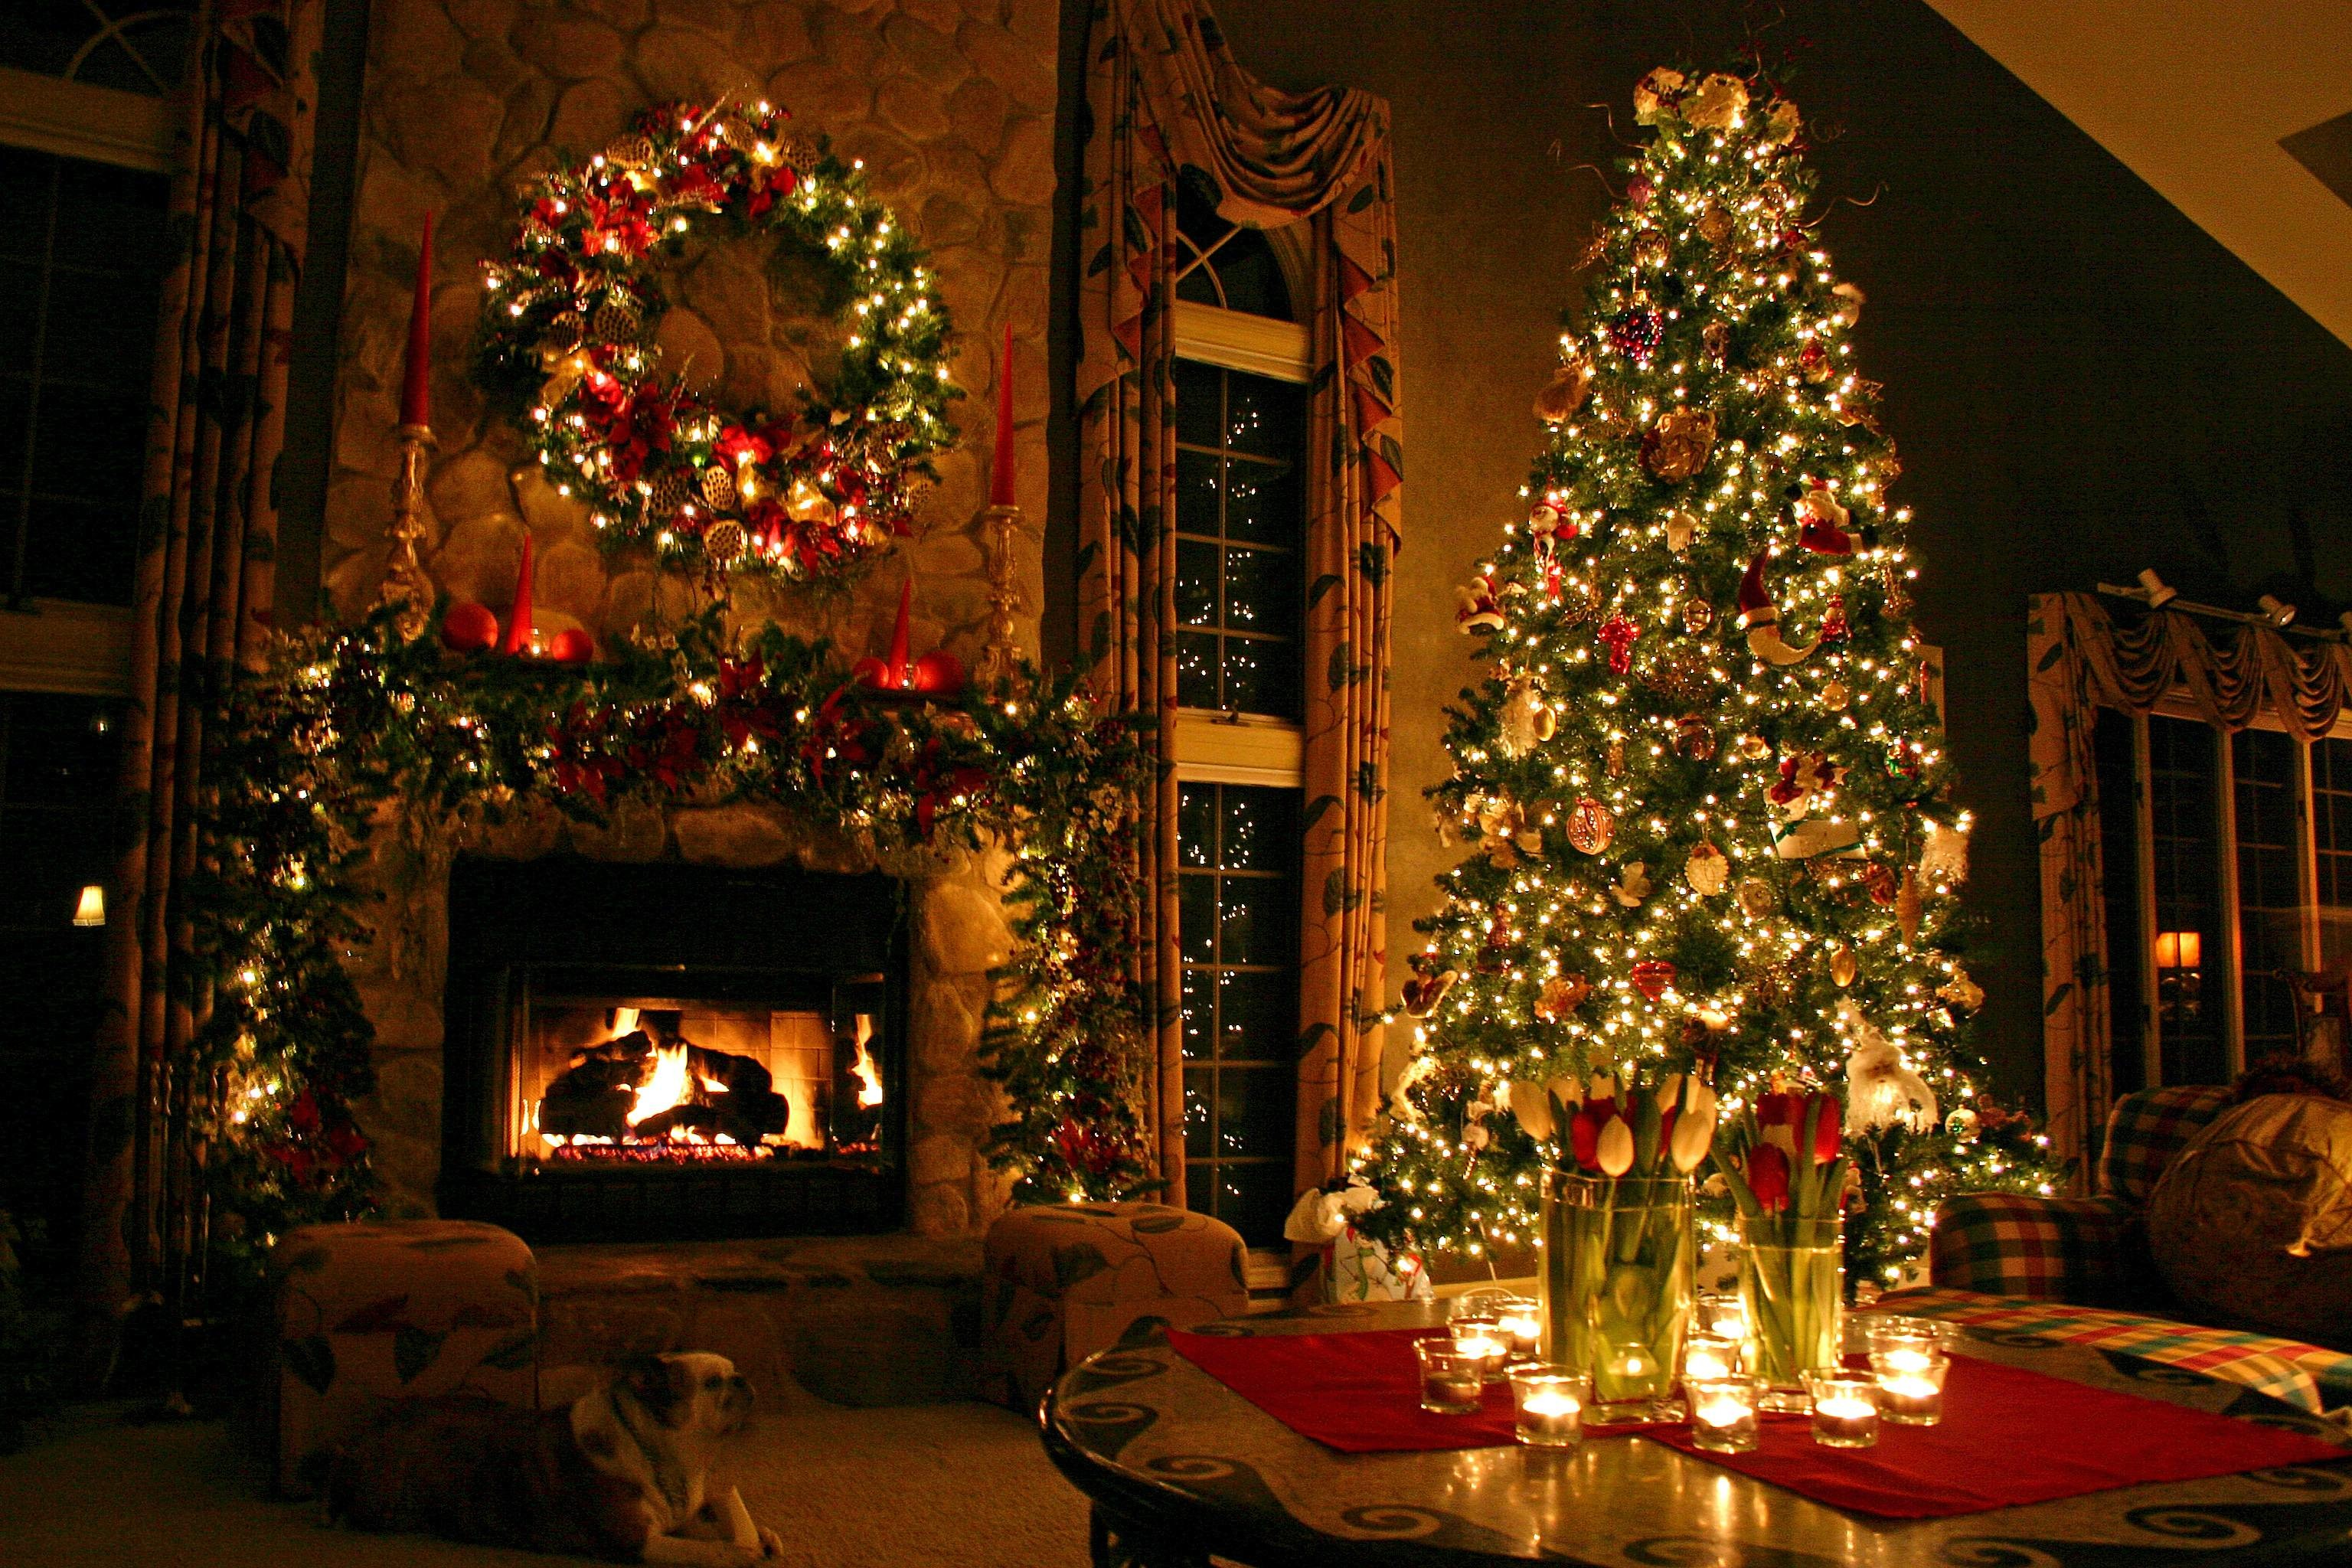 3072x2048 Christmas Tree Wallpapers 1080p